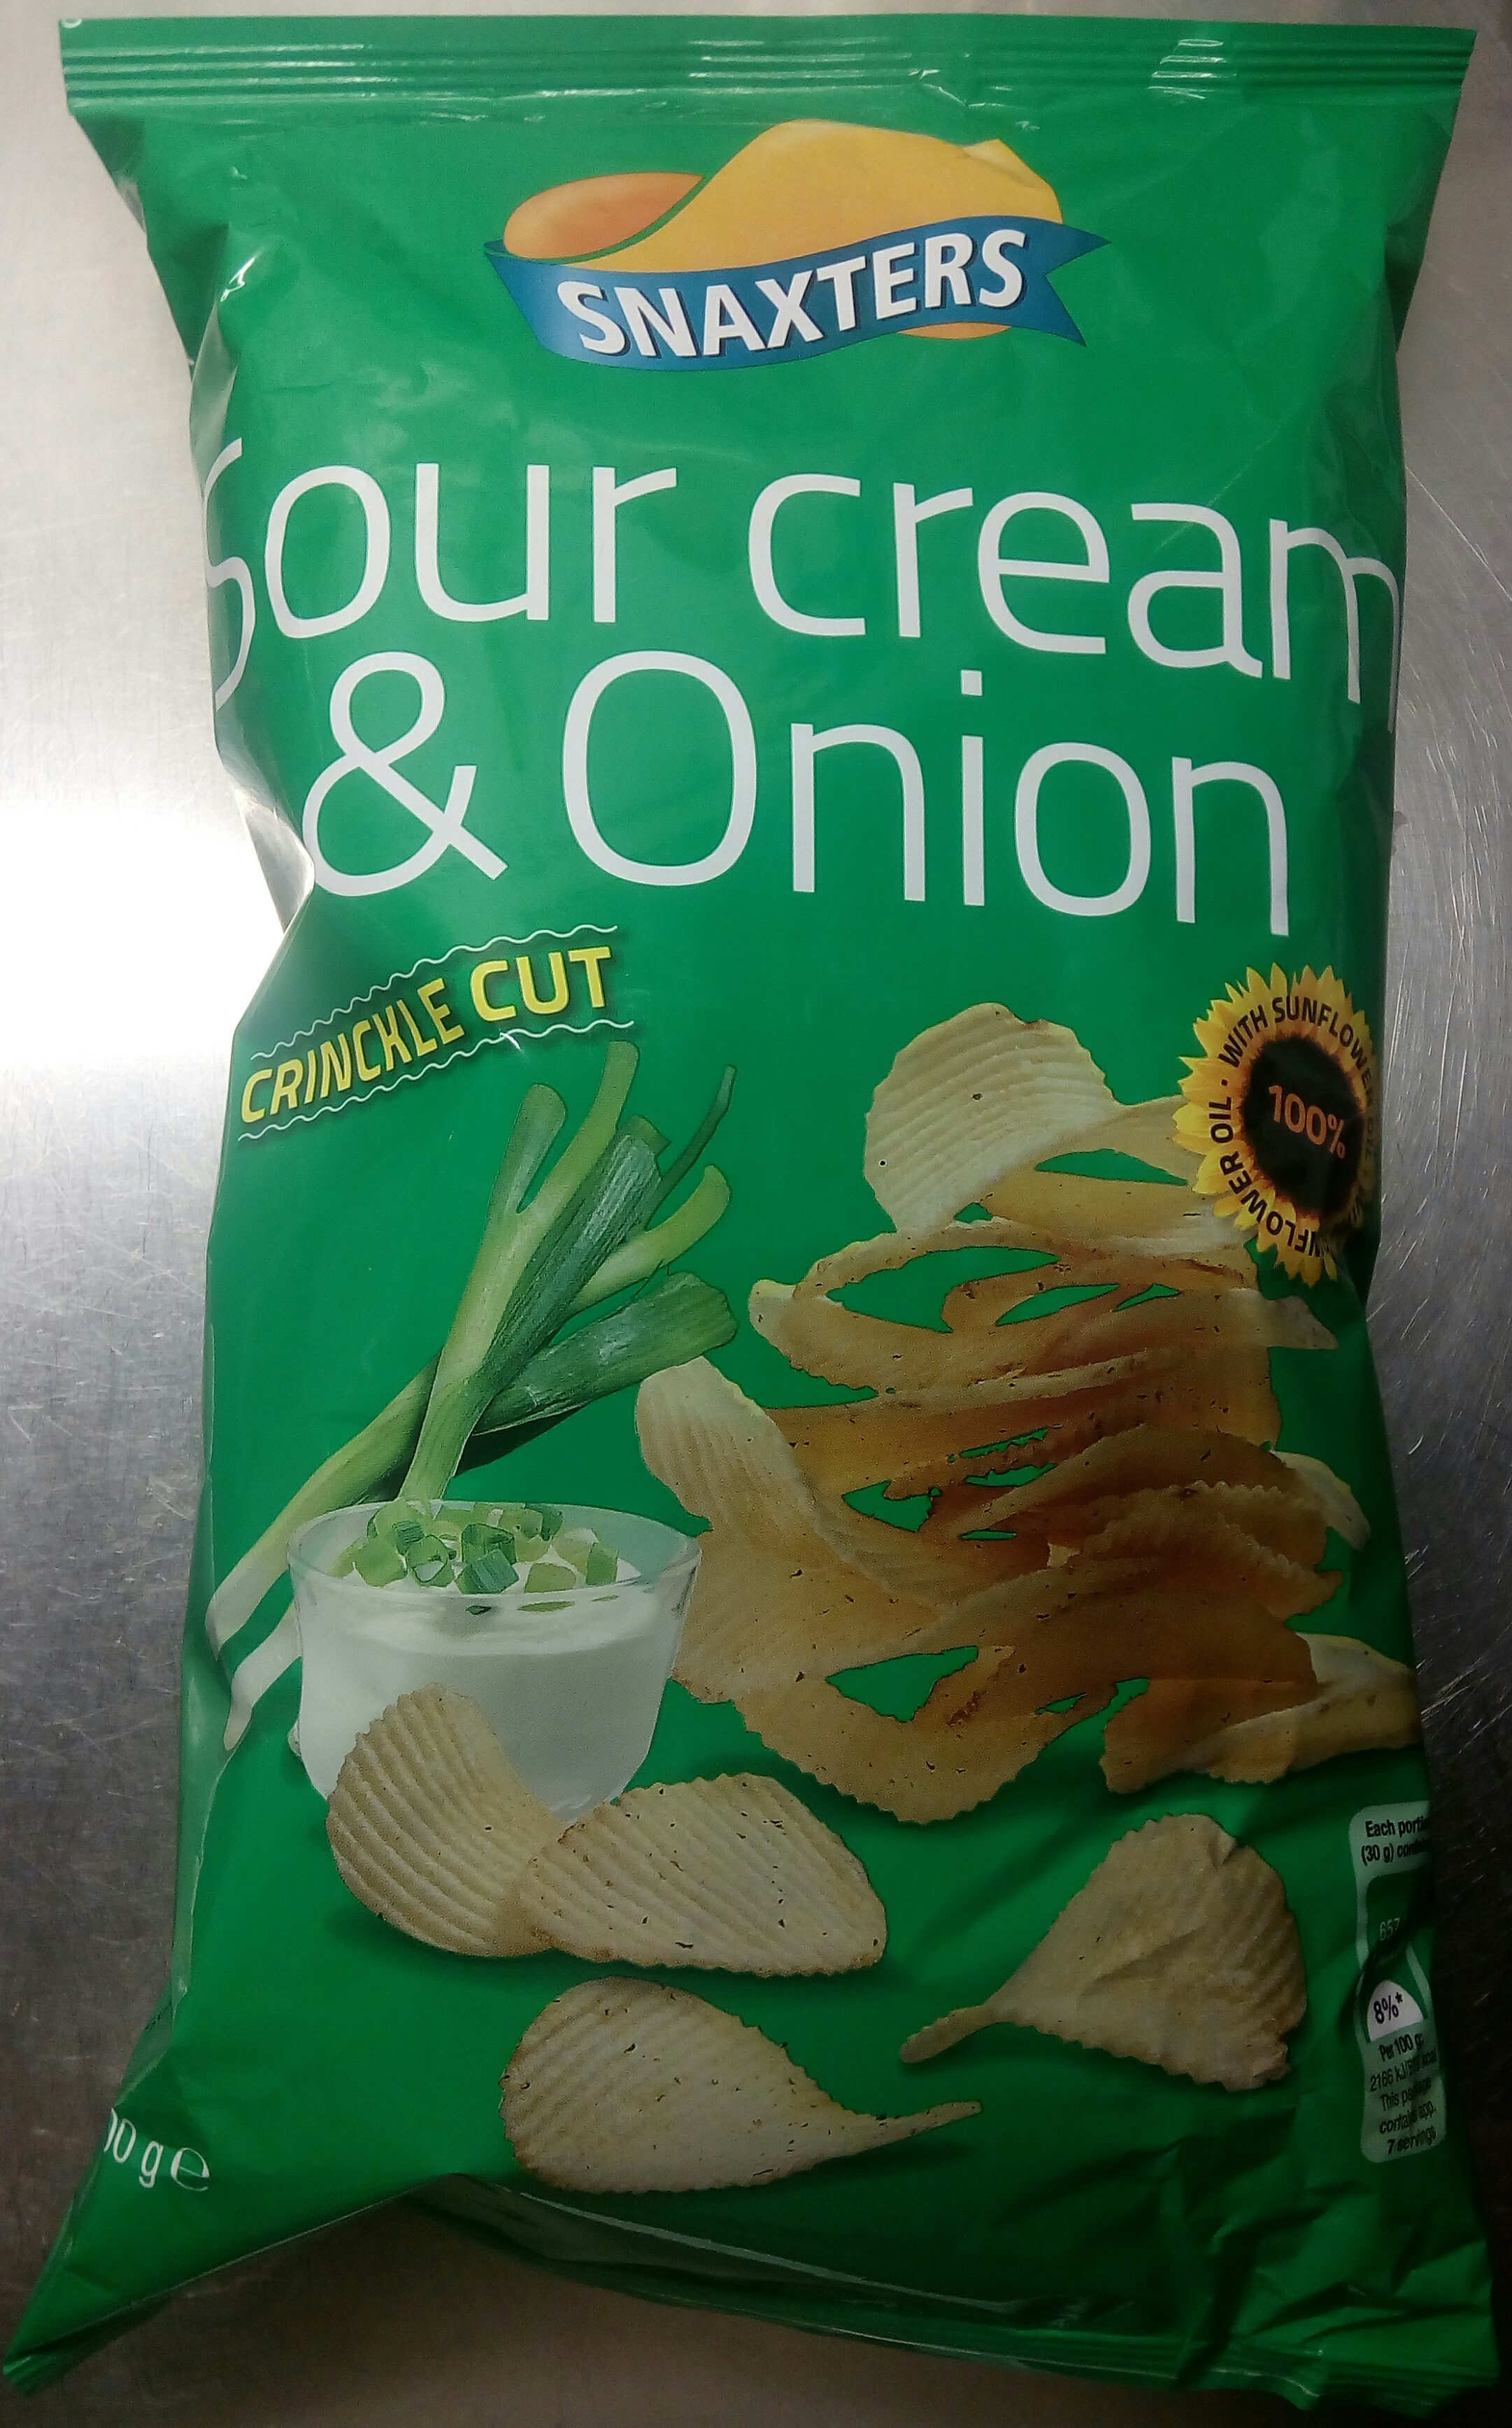 Snaxters Sour cream & Onion - Product